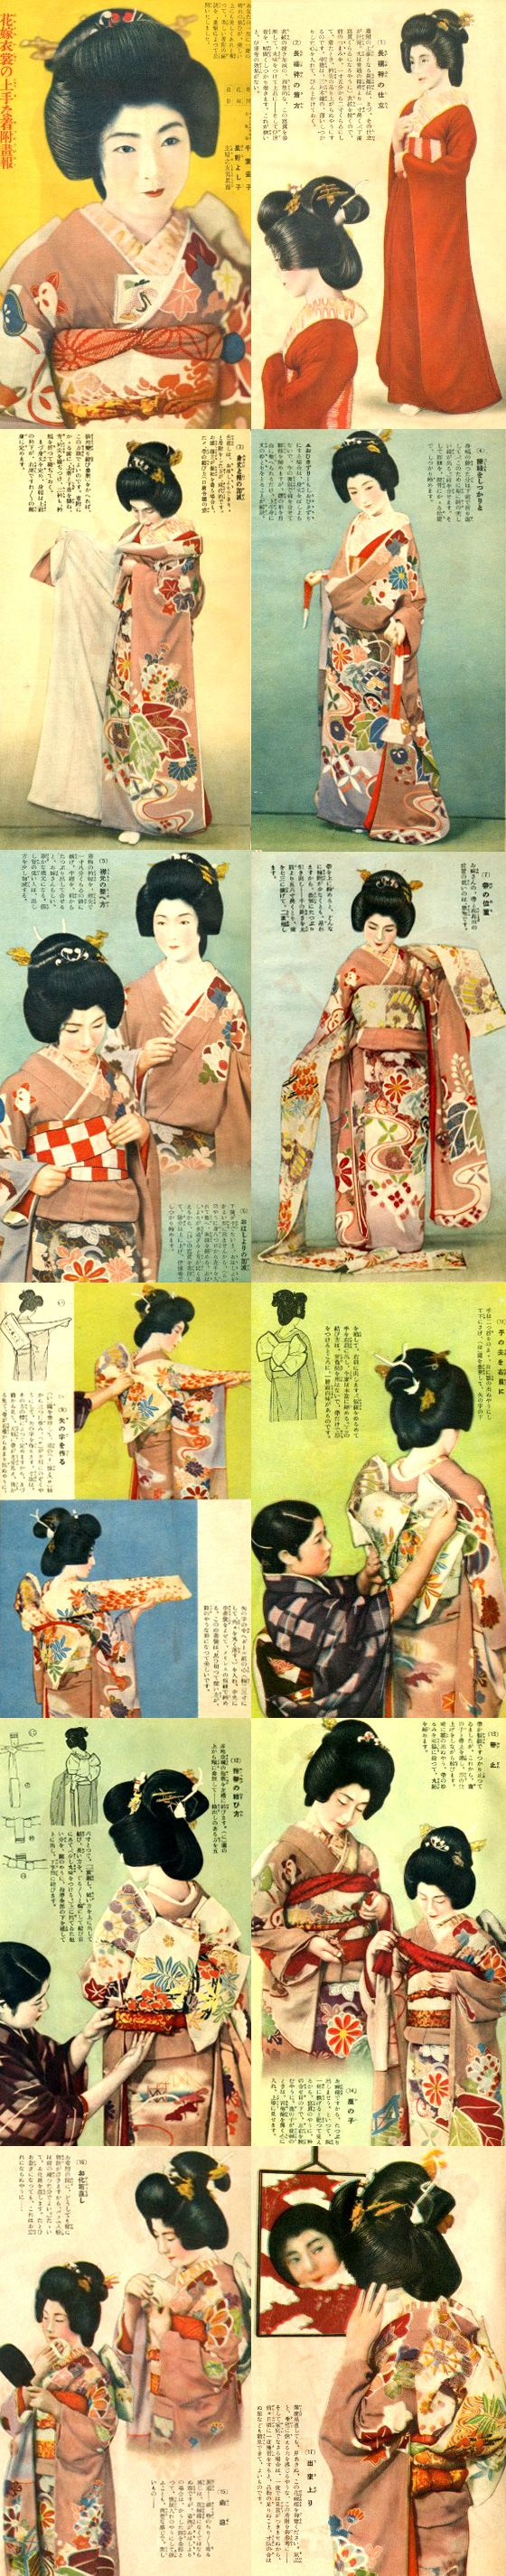 """Shufu-no Tomo(主婦の友)"" magazine March 1934 Appendix . - Dictionary of ""Beauty of Women"" - How to wear Bride's Kimono."